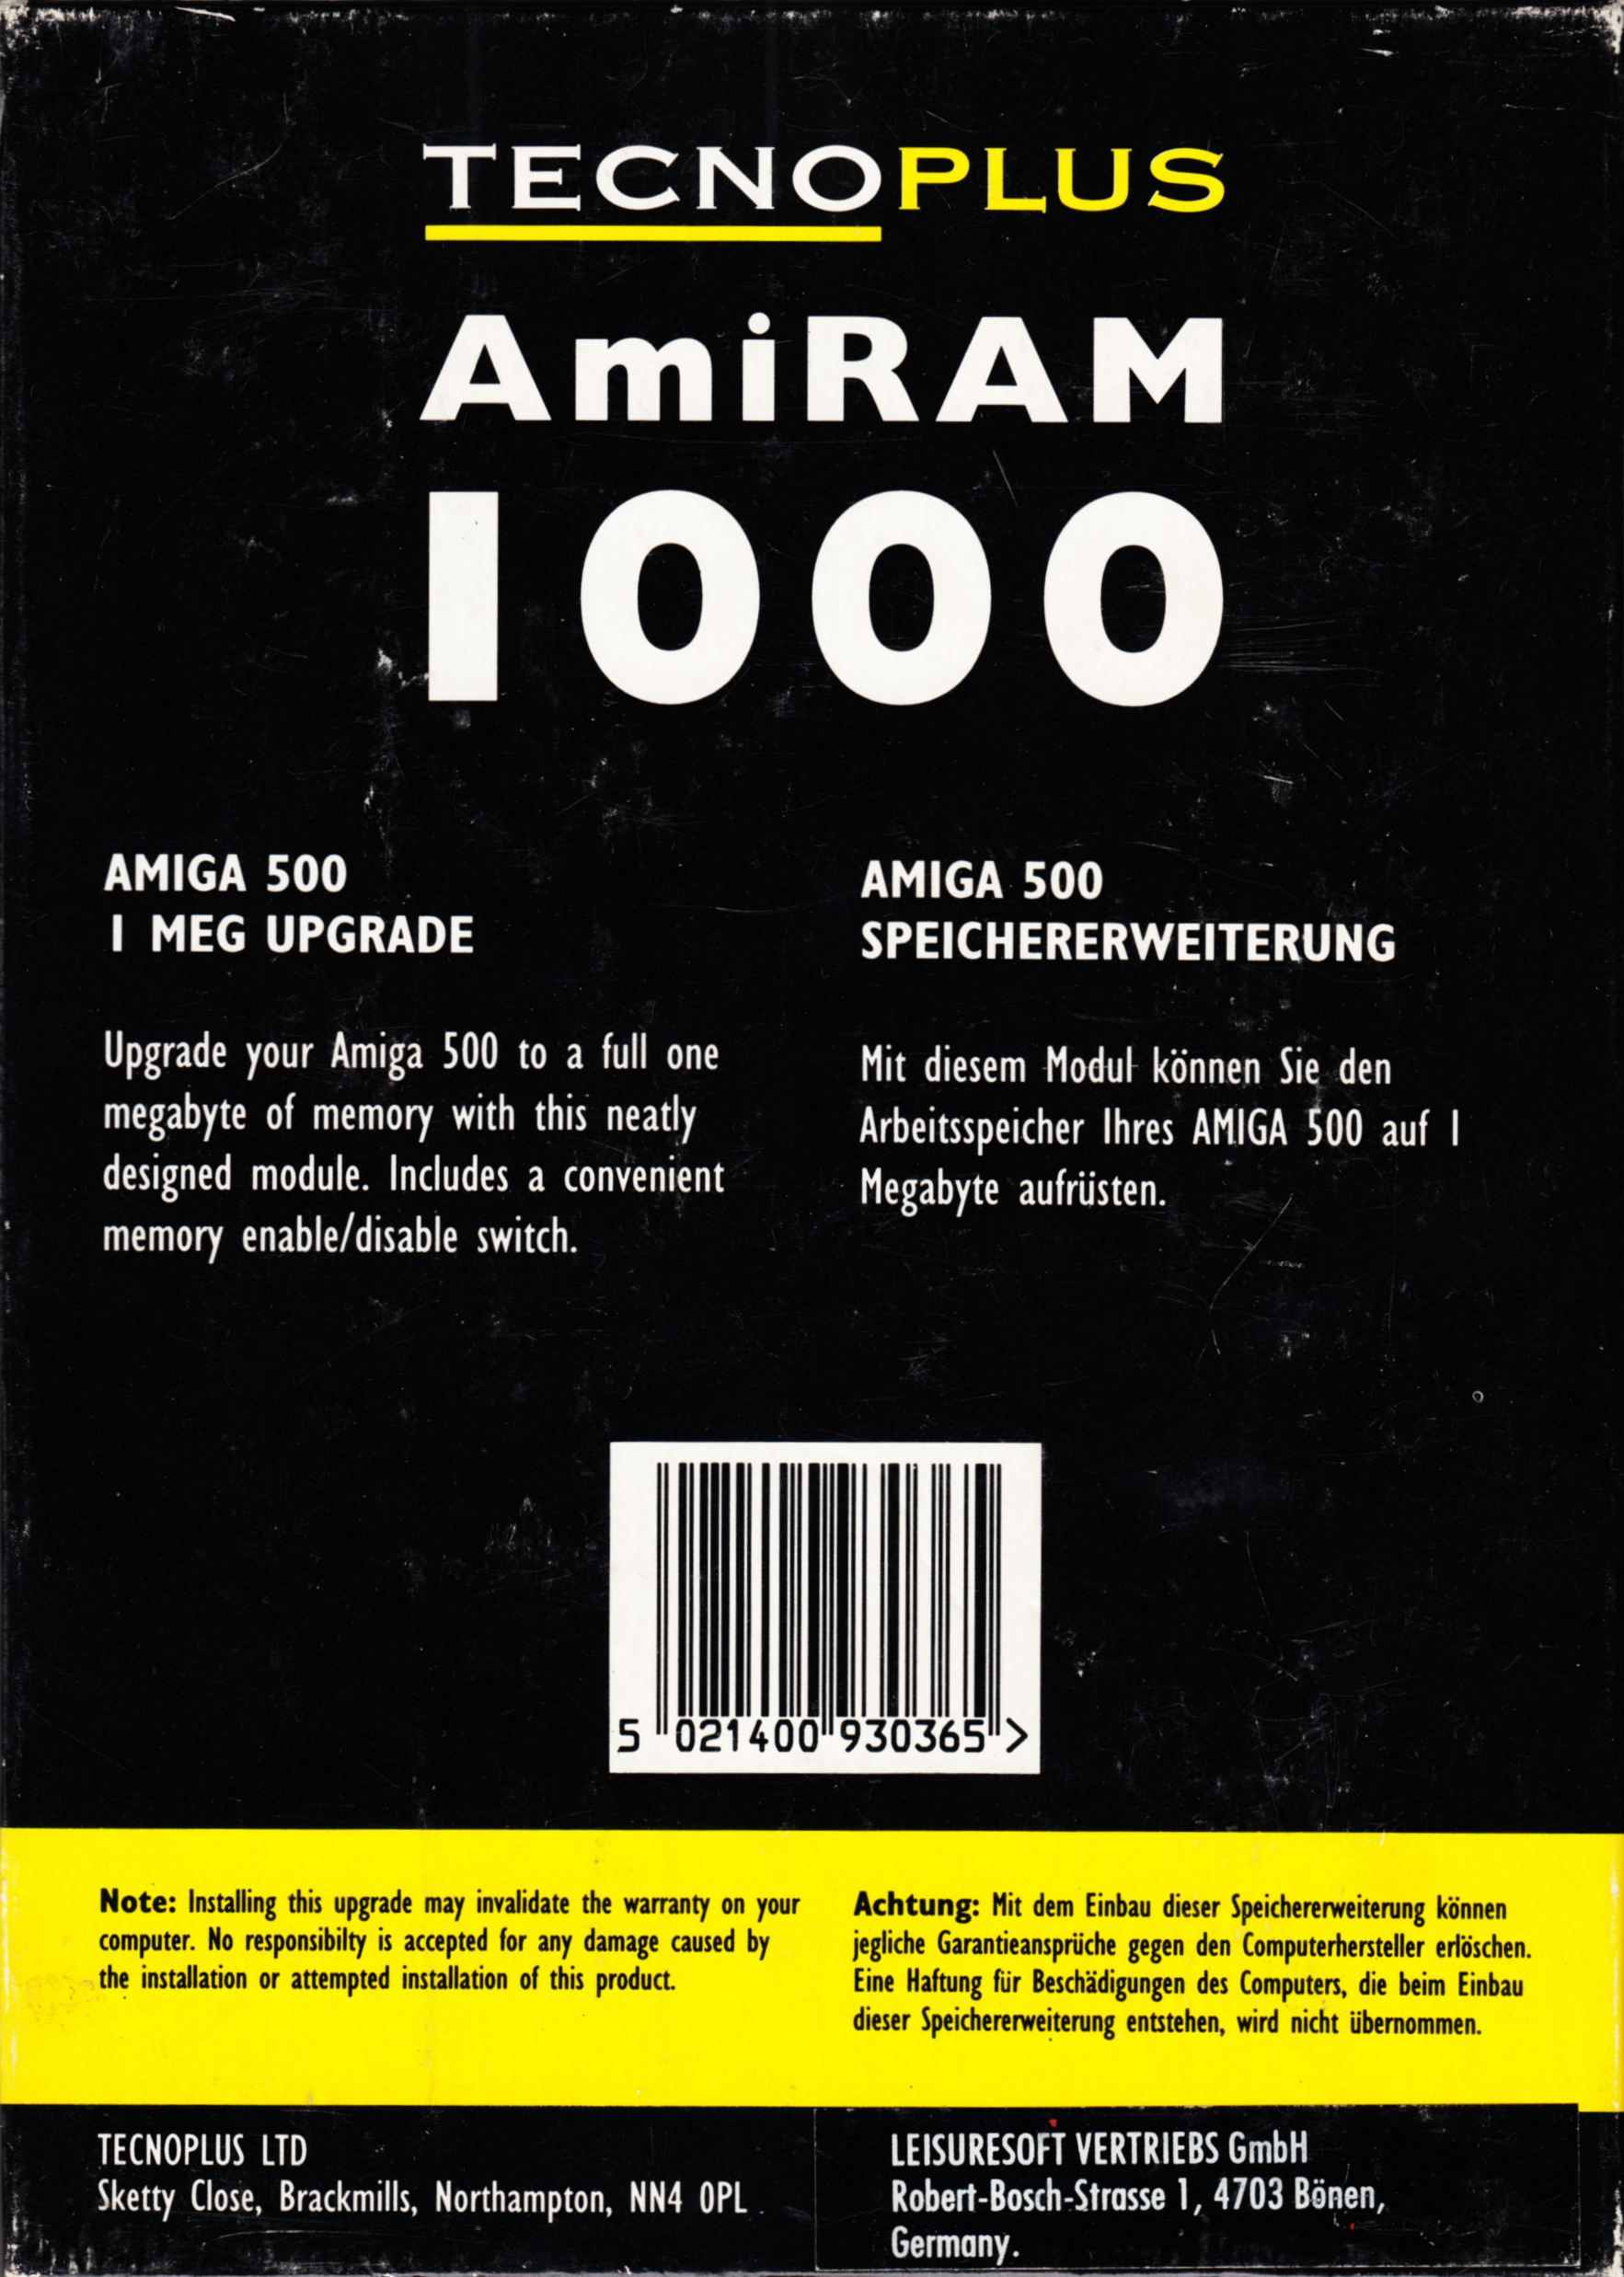 Memory Card - AmiRAM 1000 - EU - Amiga - Without Clock DM CSB - Box - Back - Scan